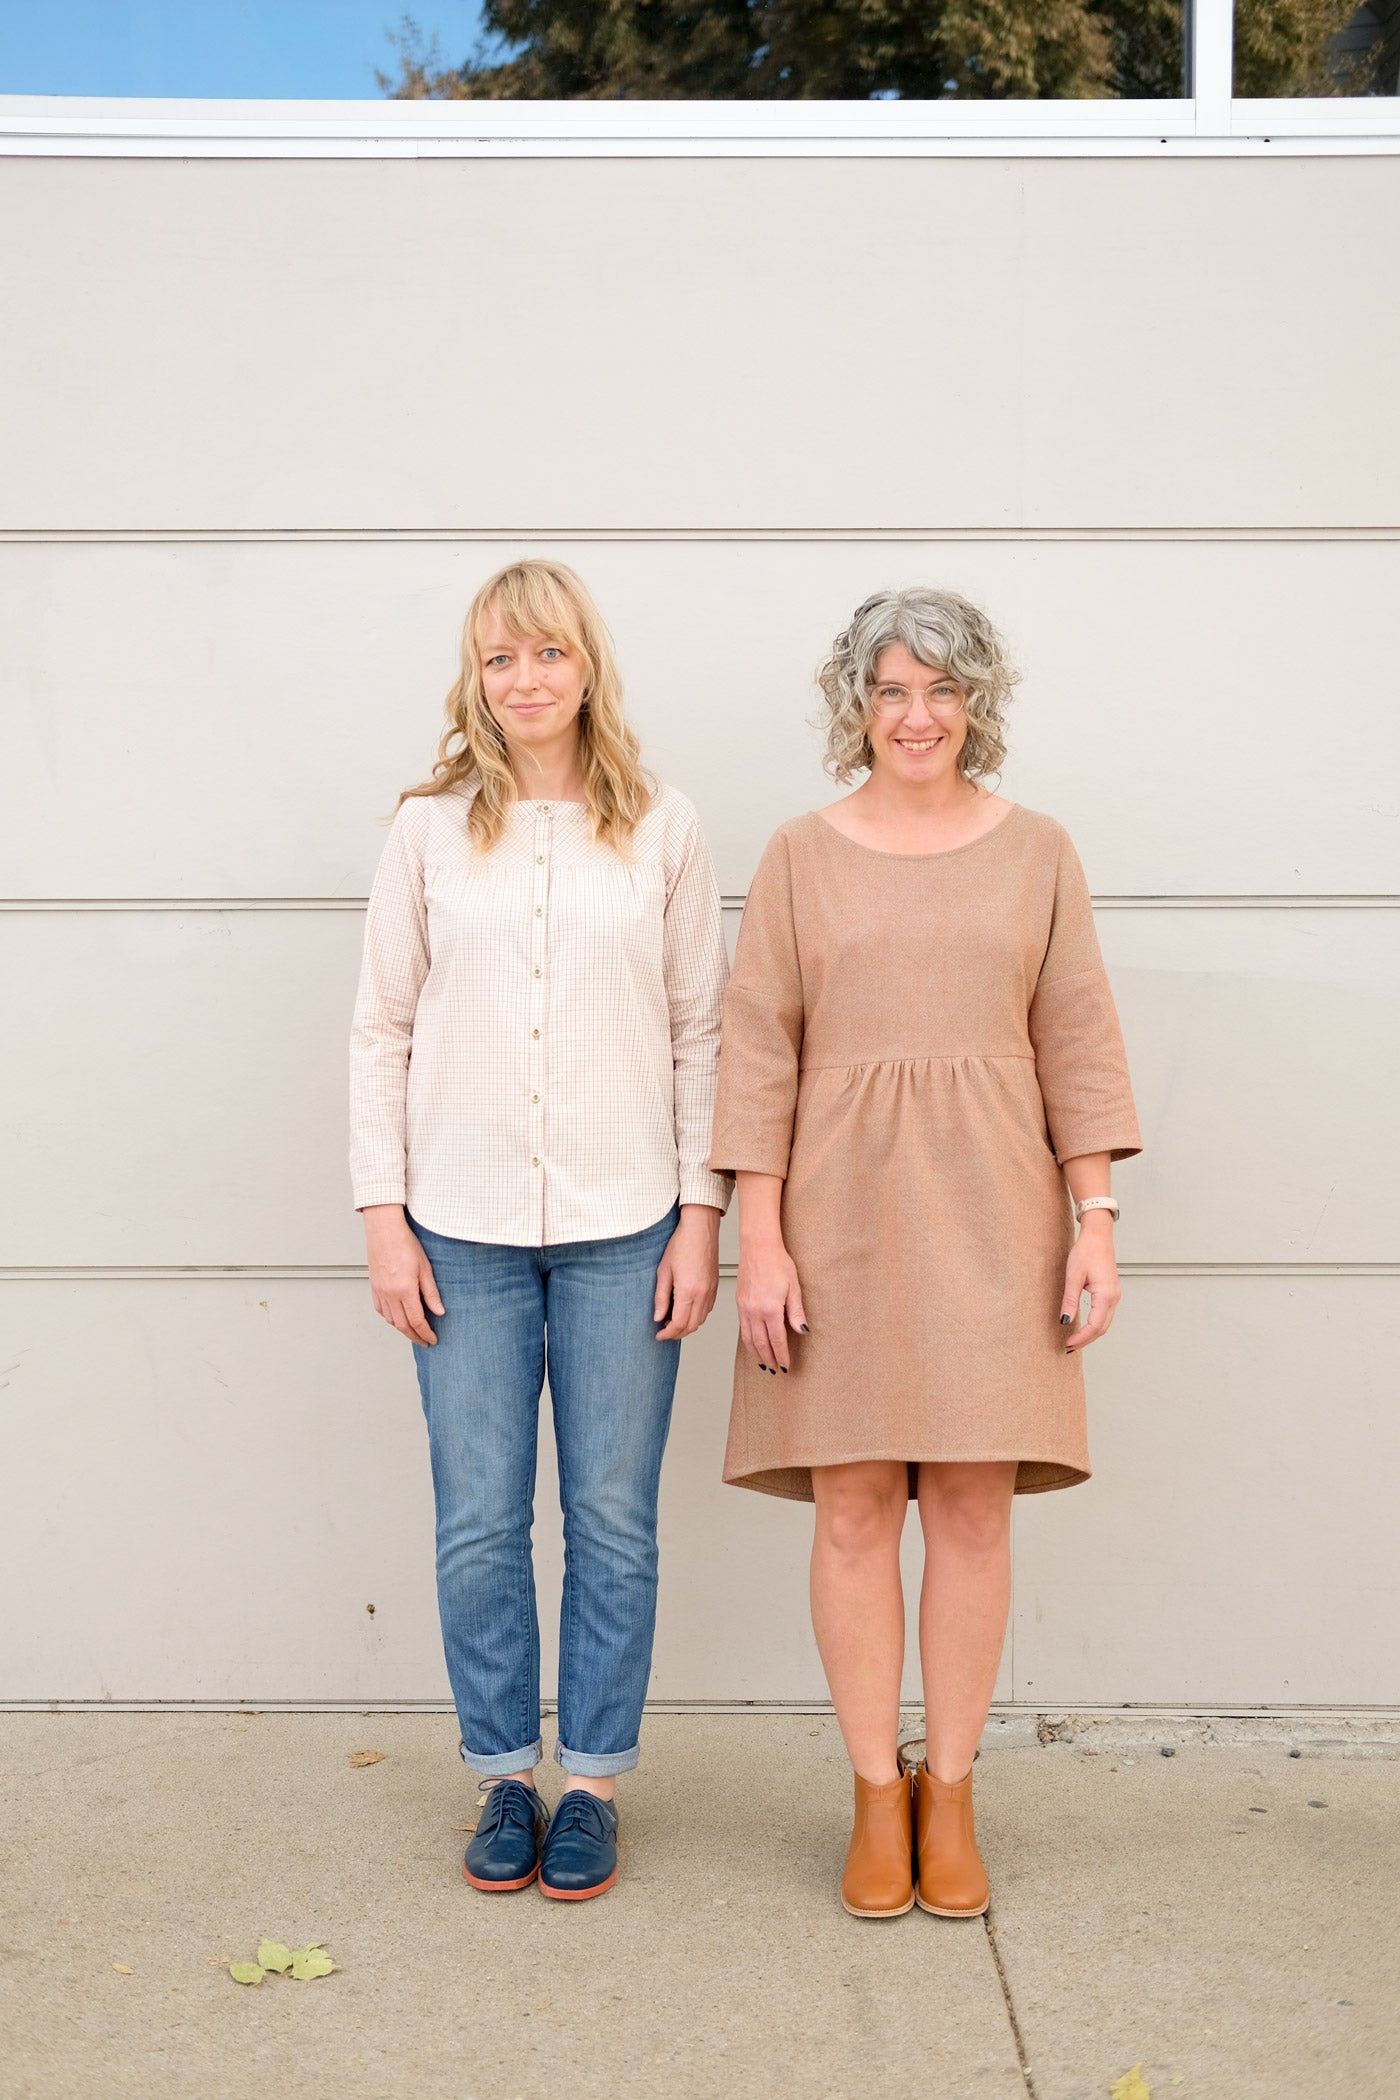 Two women standing in front of an off-white wall outside. One wears jeans and a light plaid button up shirt, and the other wears a light brownish knee-length dress with 3/4 sleeves and a gathered waist with pockets.